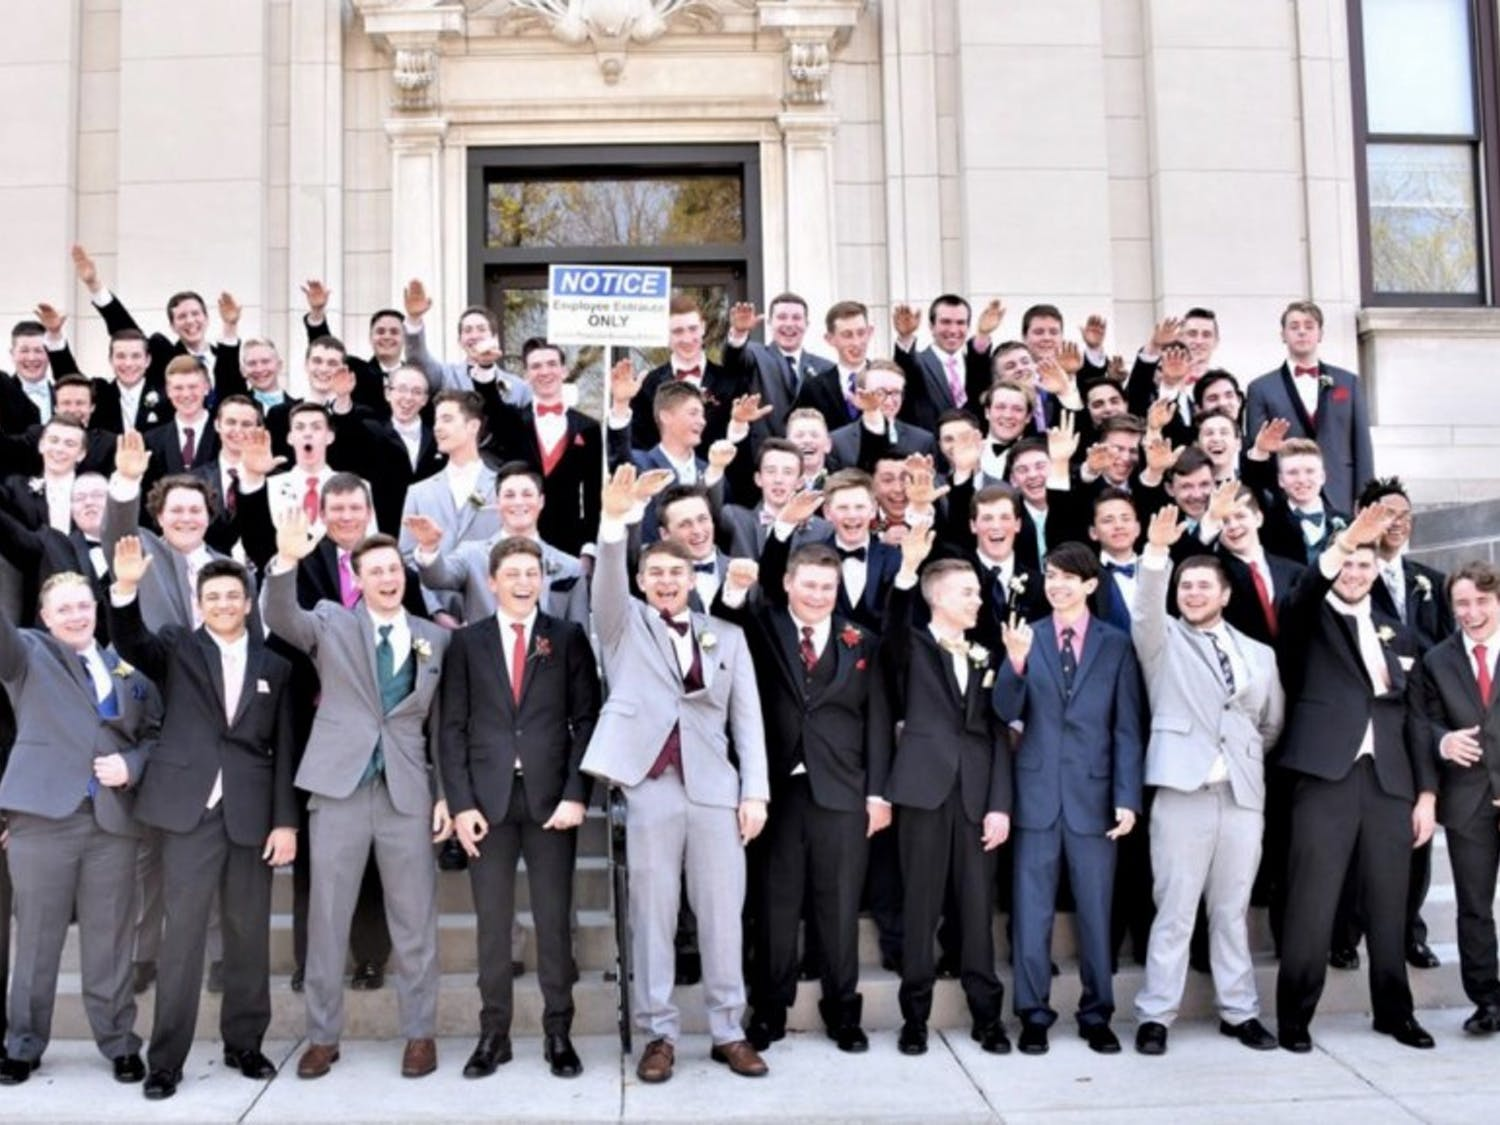 The Baraboo School District will not punish students involved in a viral Nazi salute photo, citing lack of evidence of anti-Semitic intent.